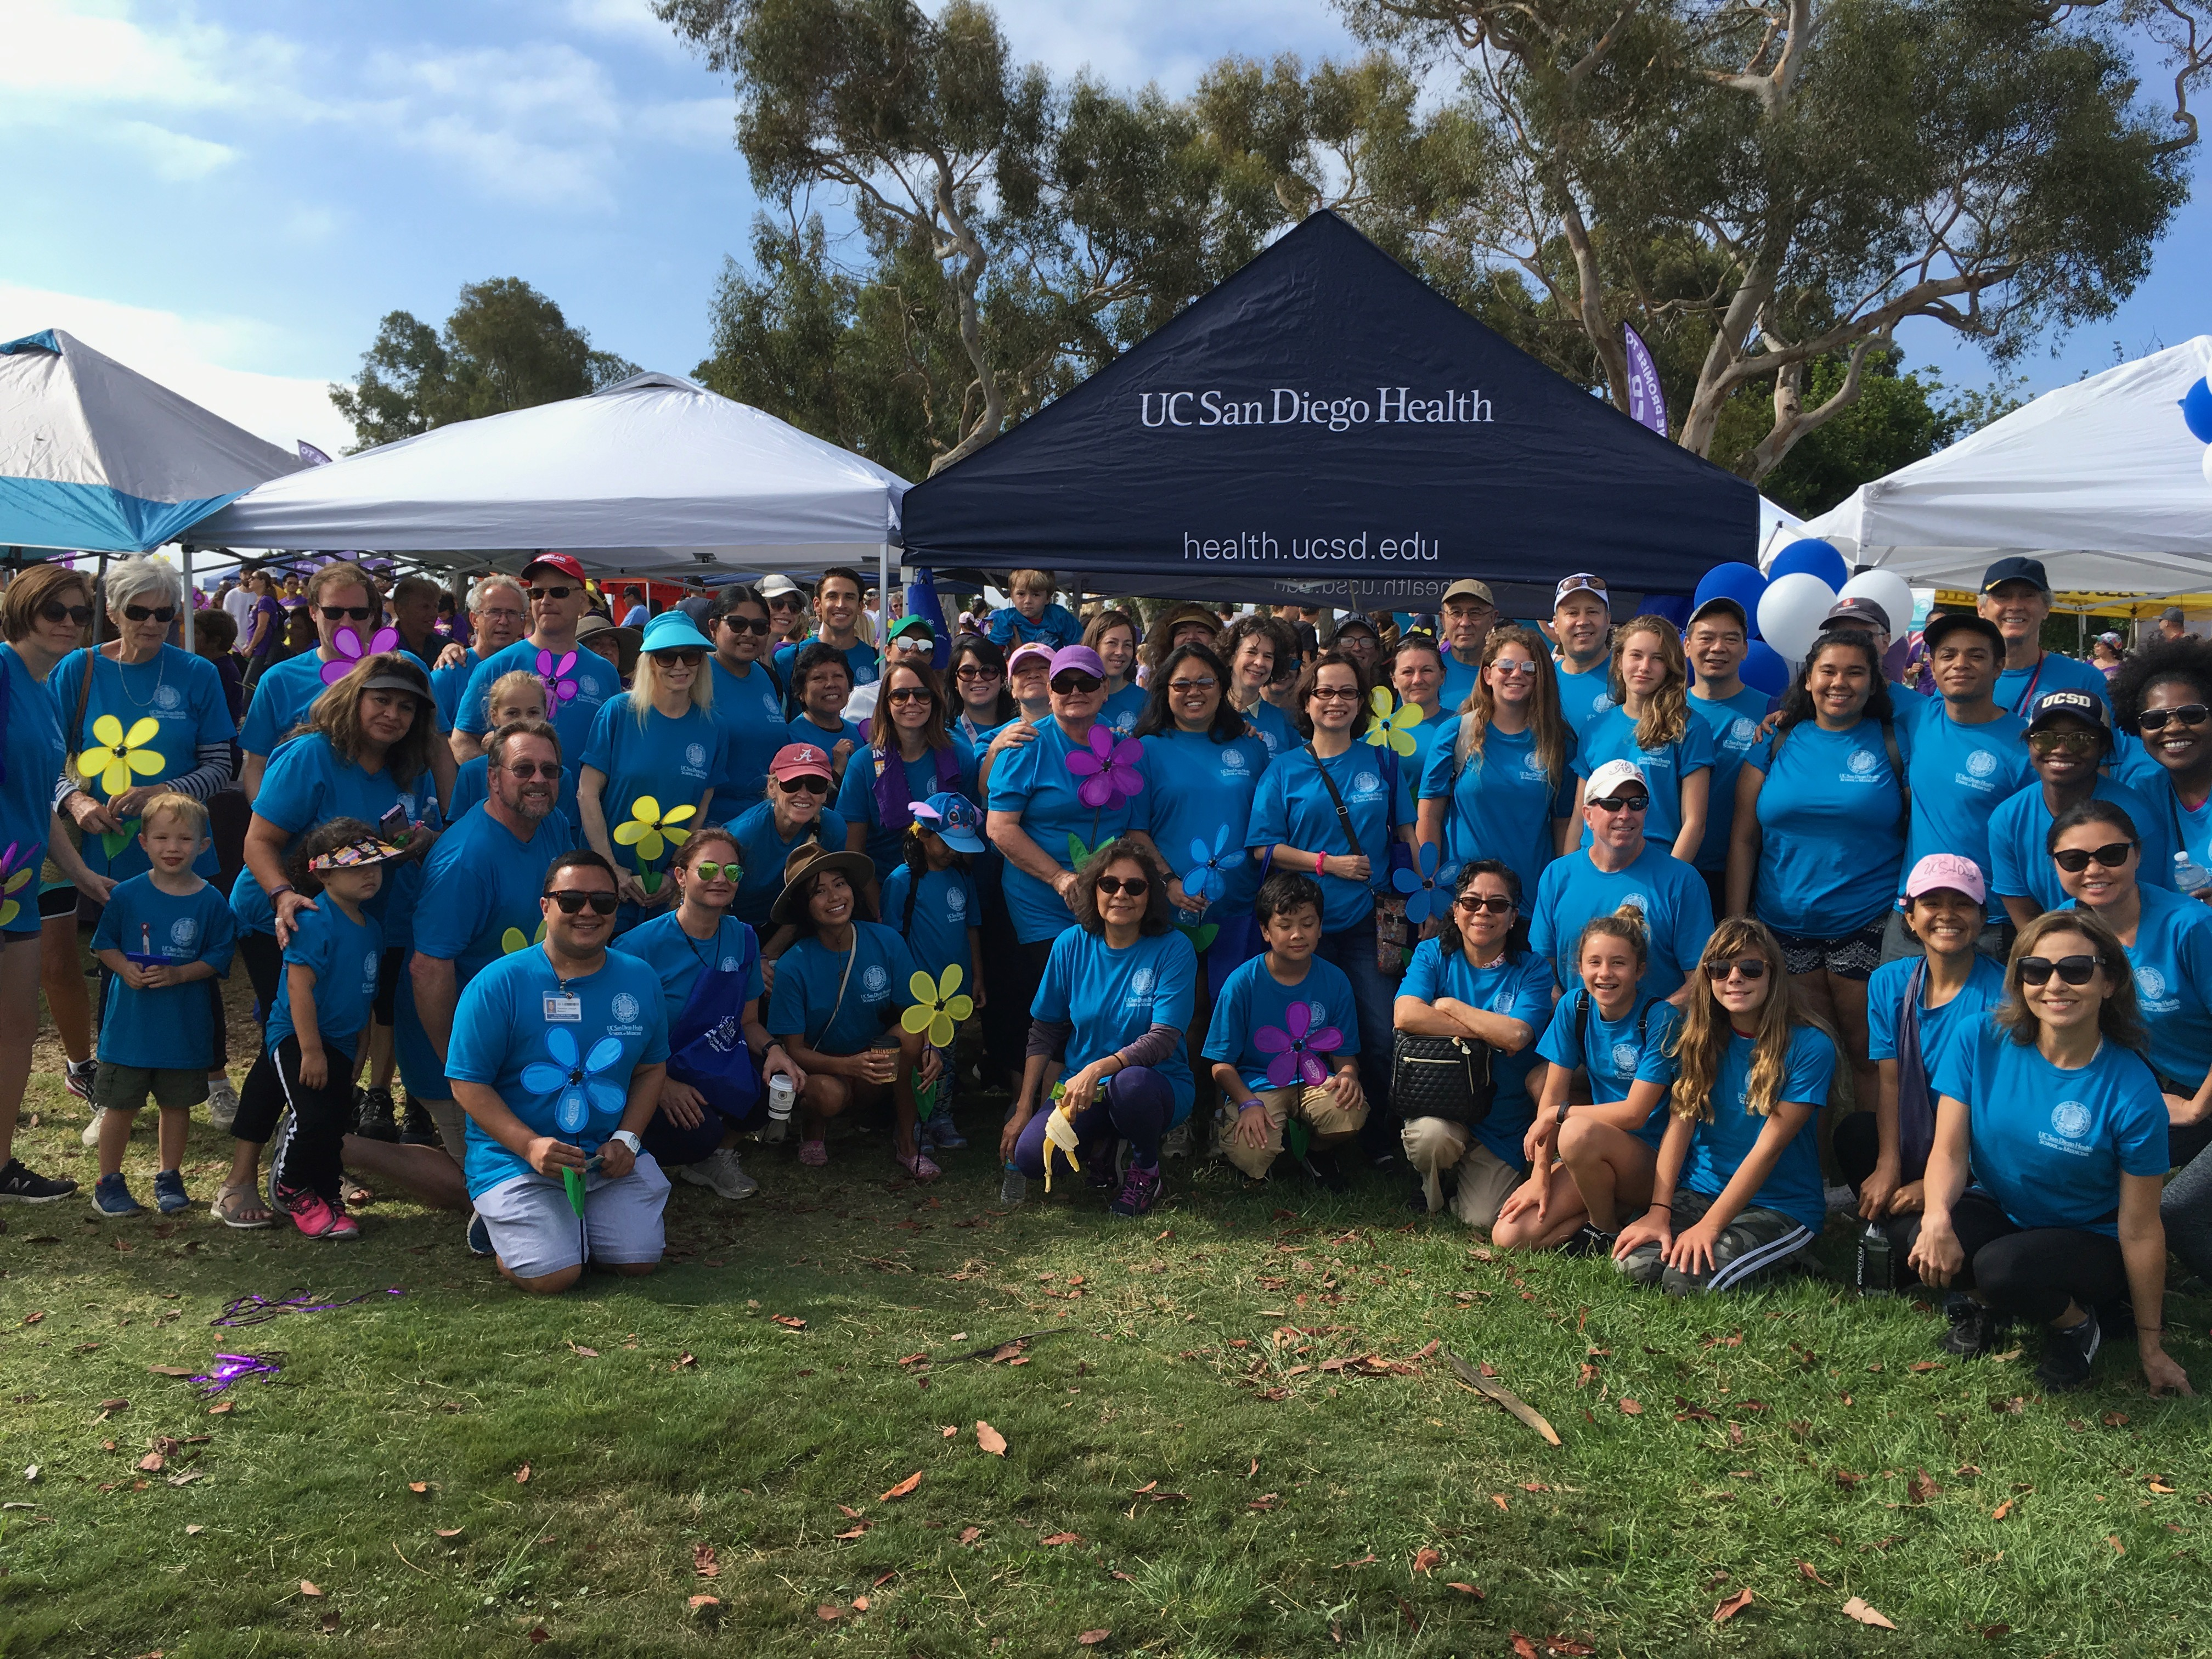 Thank you for joining us on the Alzheimer's Walk!